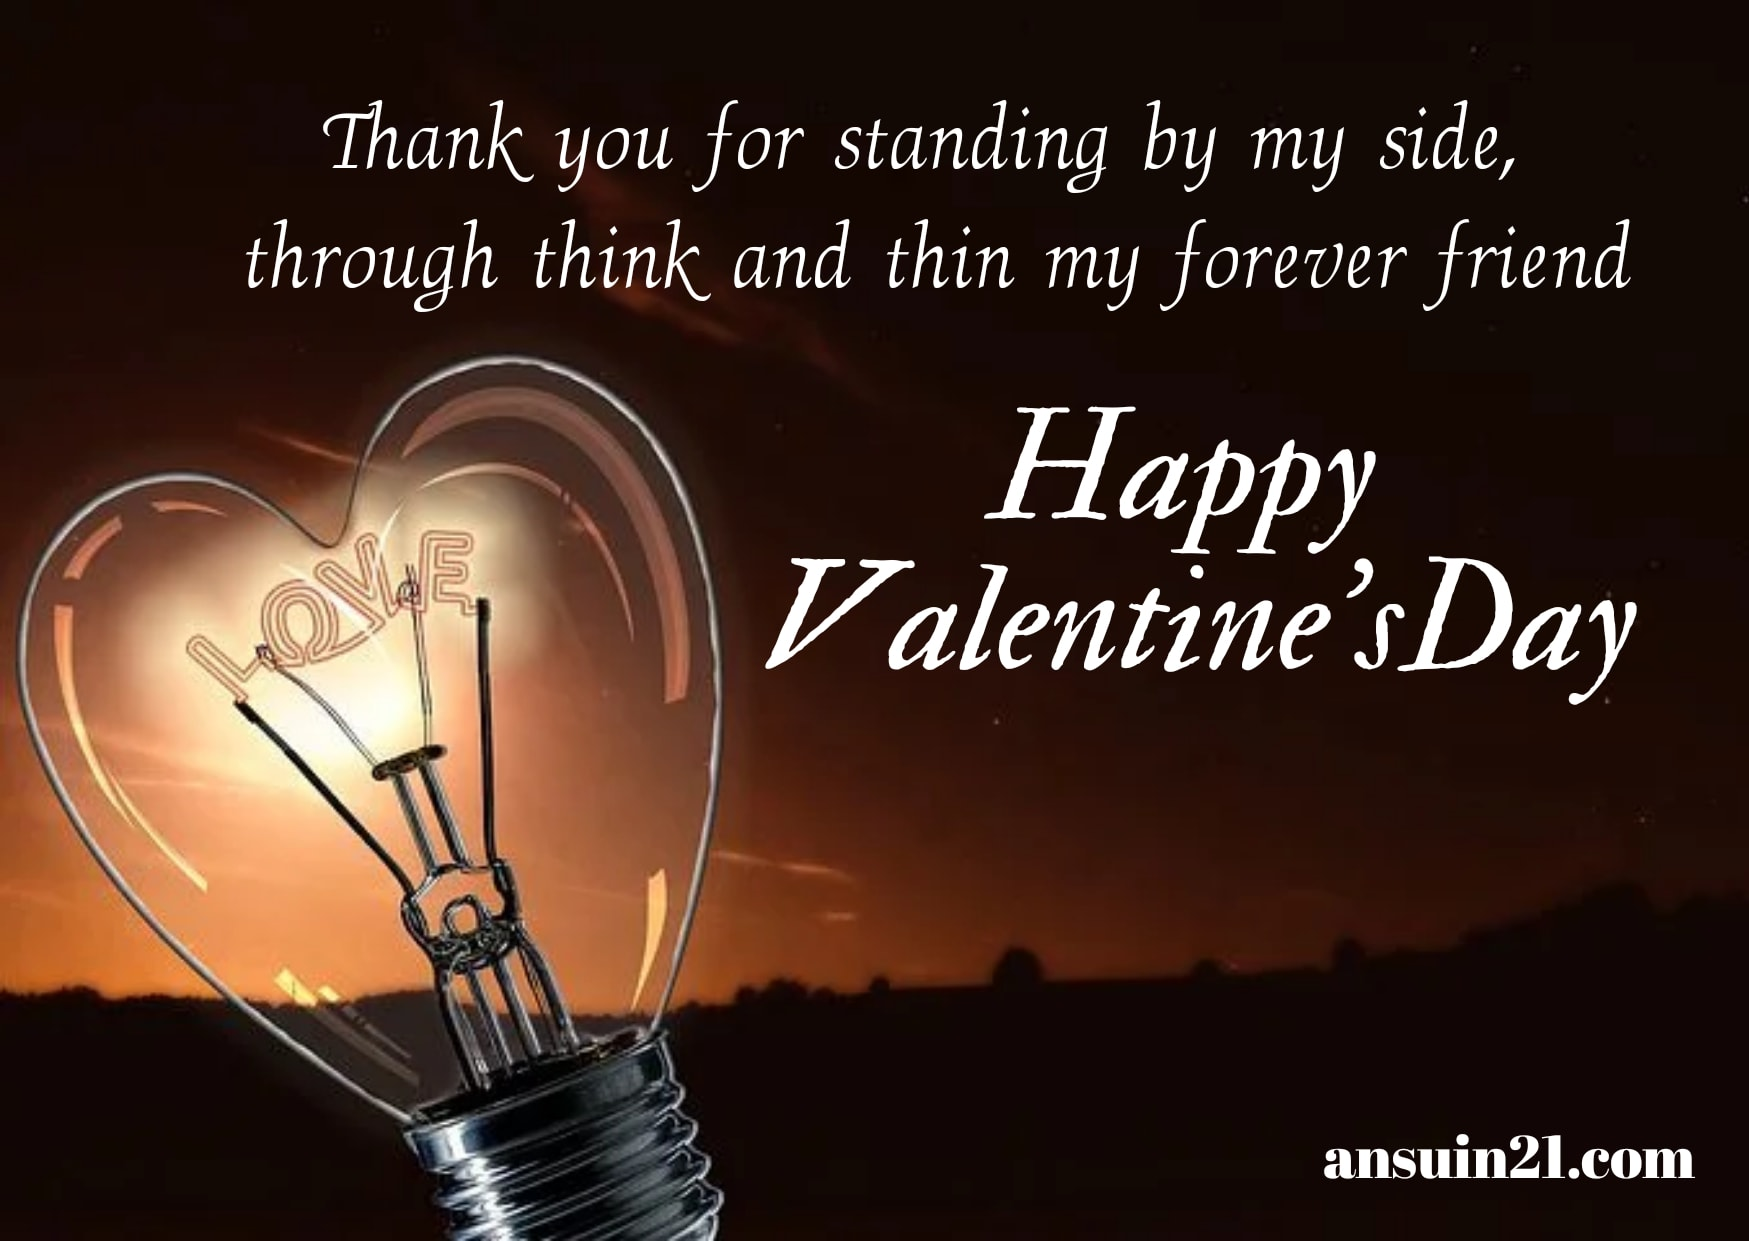 Best Happy Valentine's Day Wishes, Images & Quotes